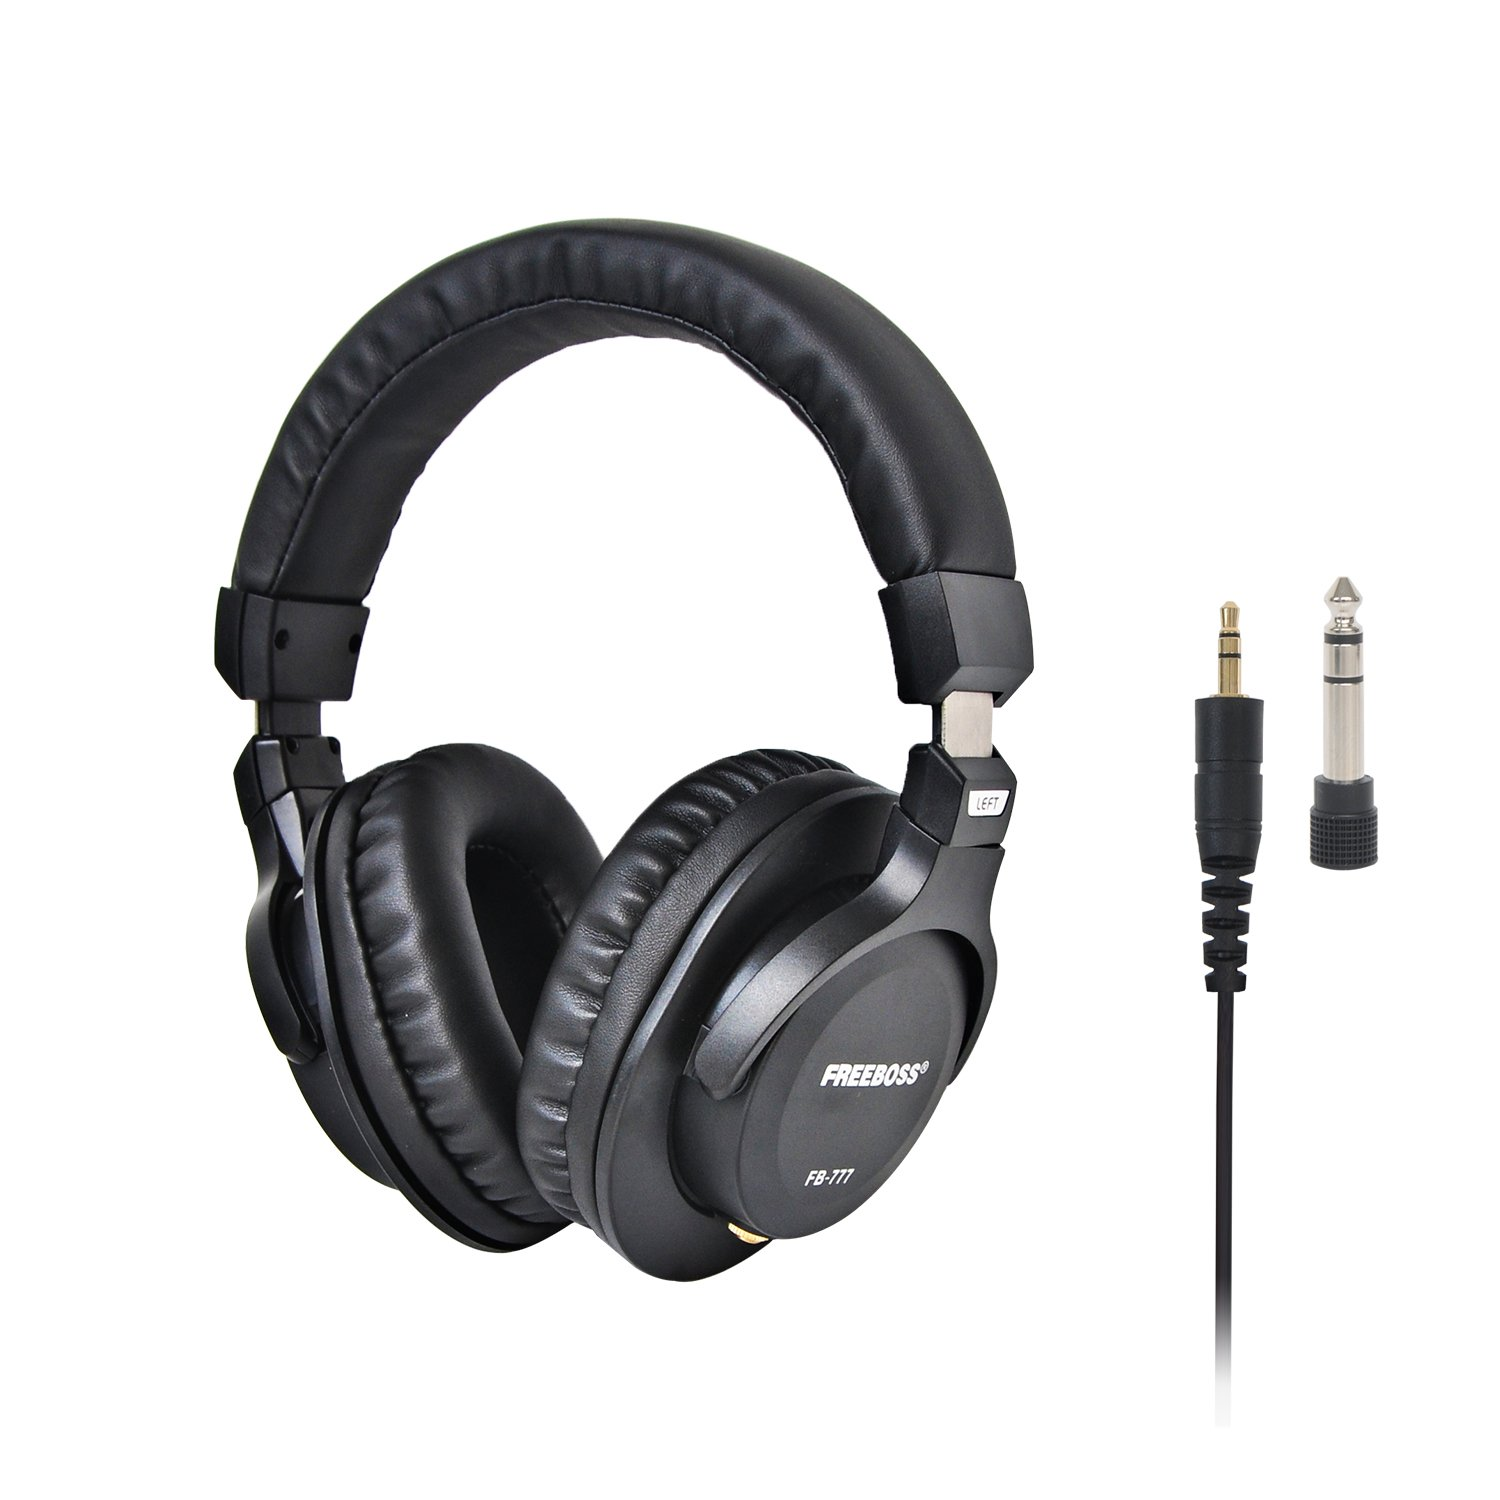 Freeboss FB-777 40mm Drivers Single-side Detachable cable 3.5mm Plug 6.35mm adapter Monitor Headphones